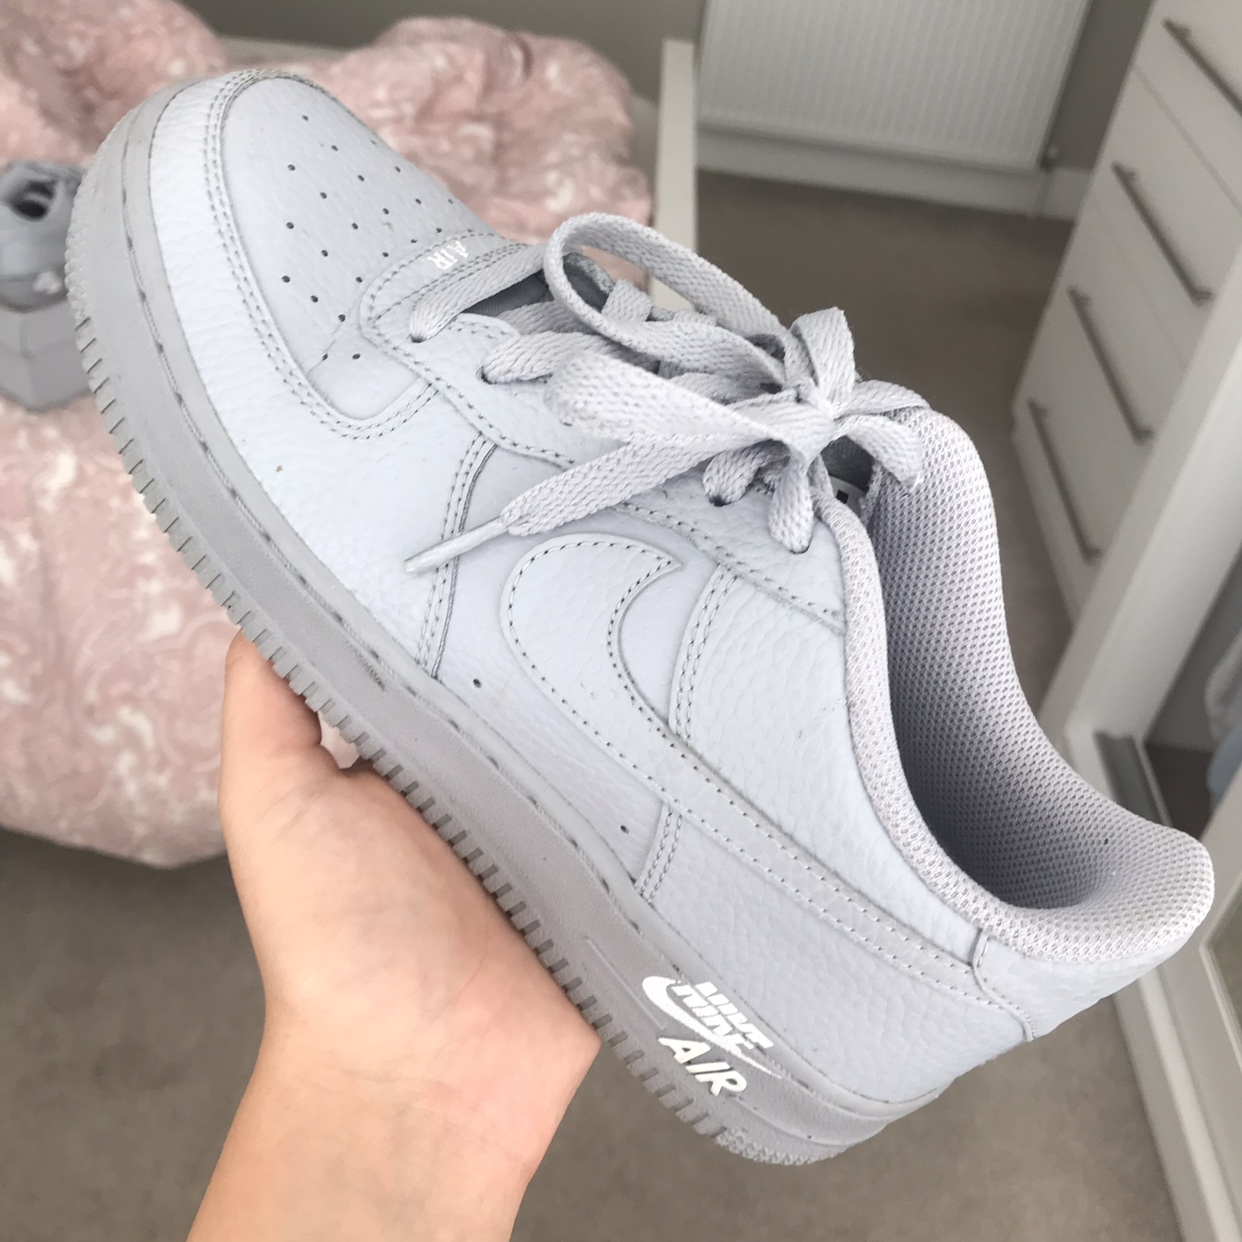 grey air force 1 size 5 Shop Clothing